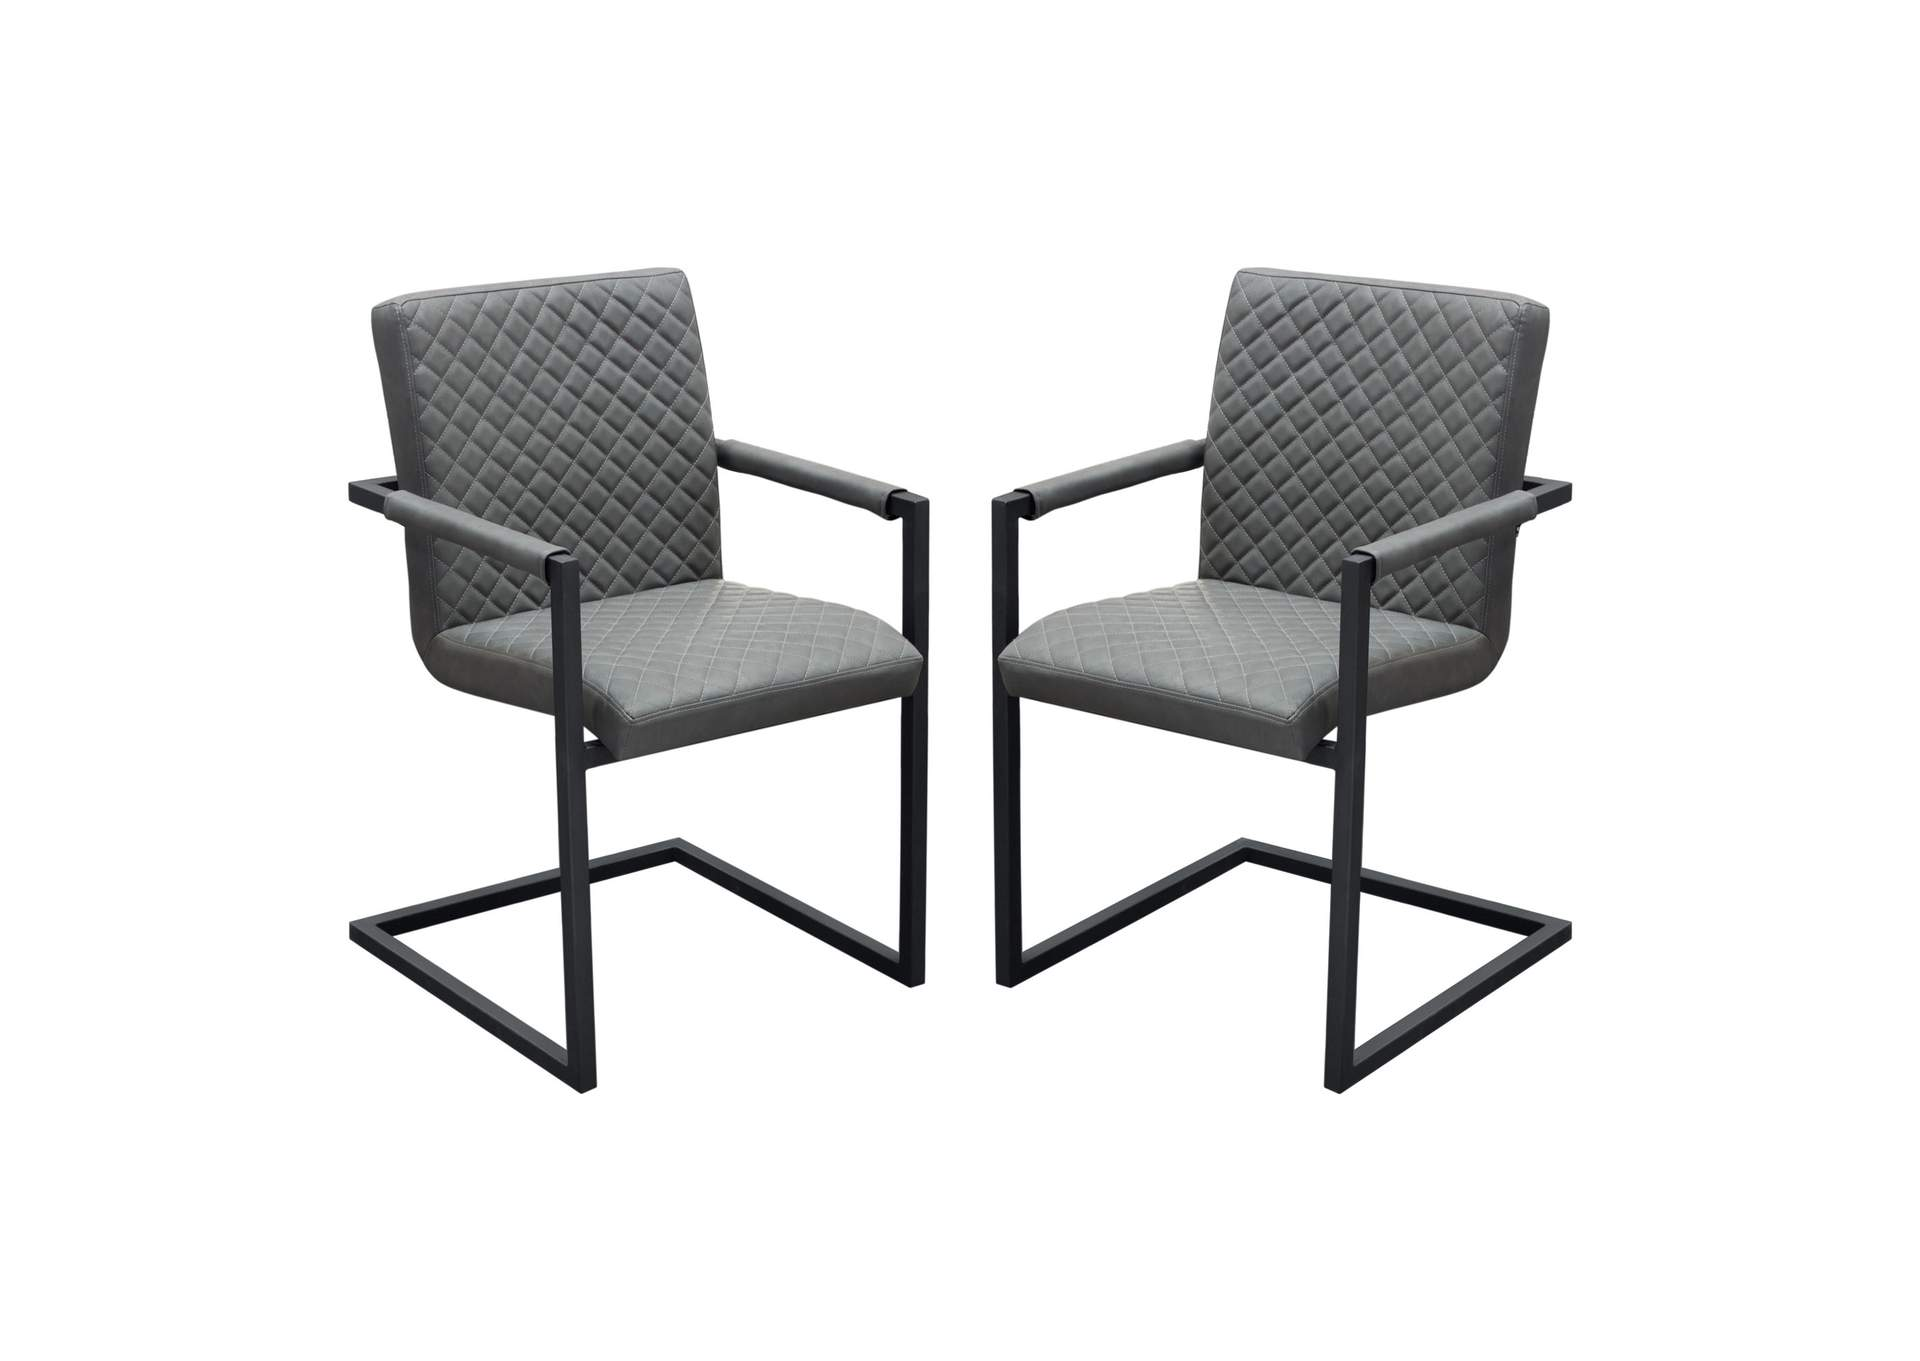 Nolan Charcoal Diamond Tufted Leatherette on Charcoal Powder Coat Frame Dining Chairs (2Pc),Diamond Sofa